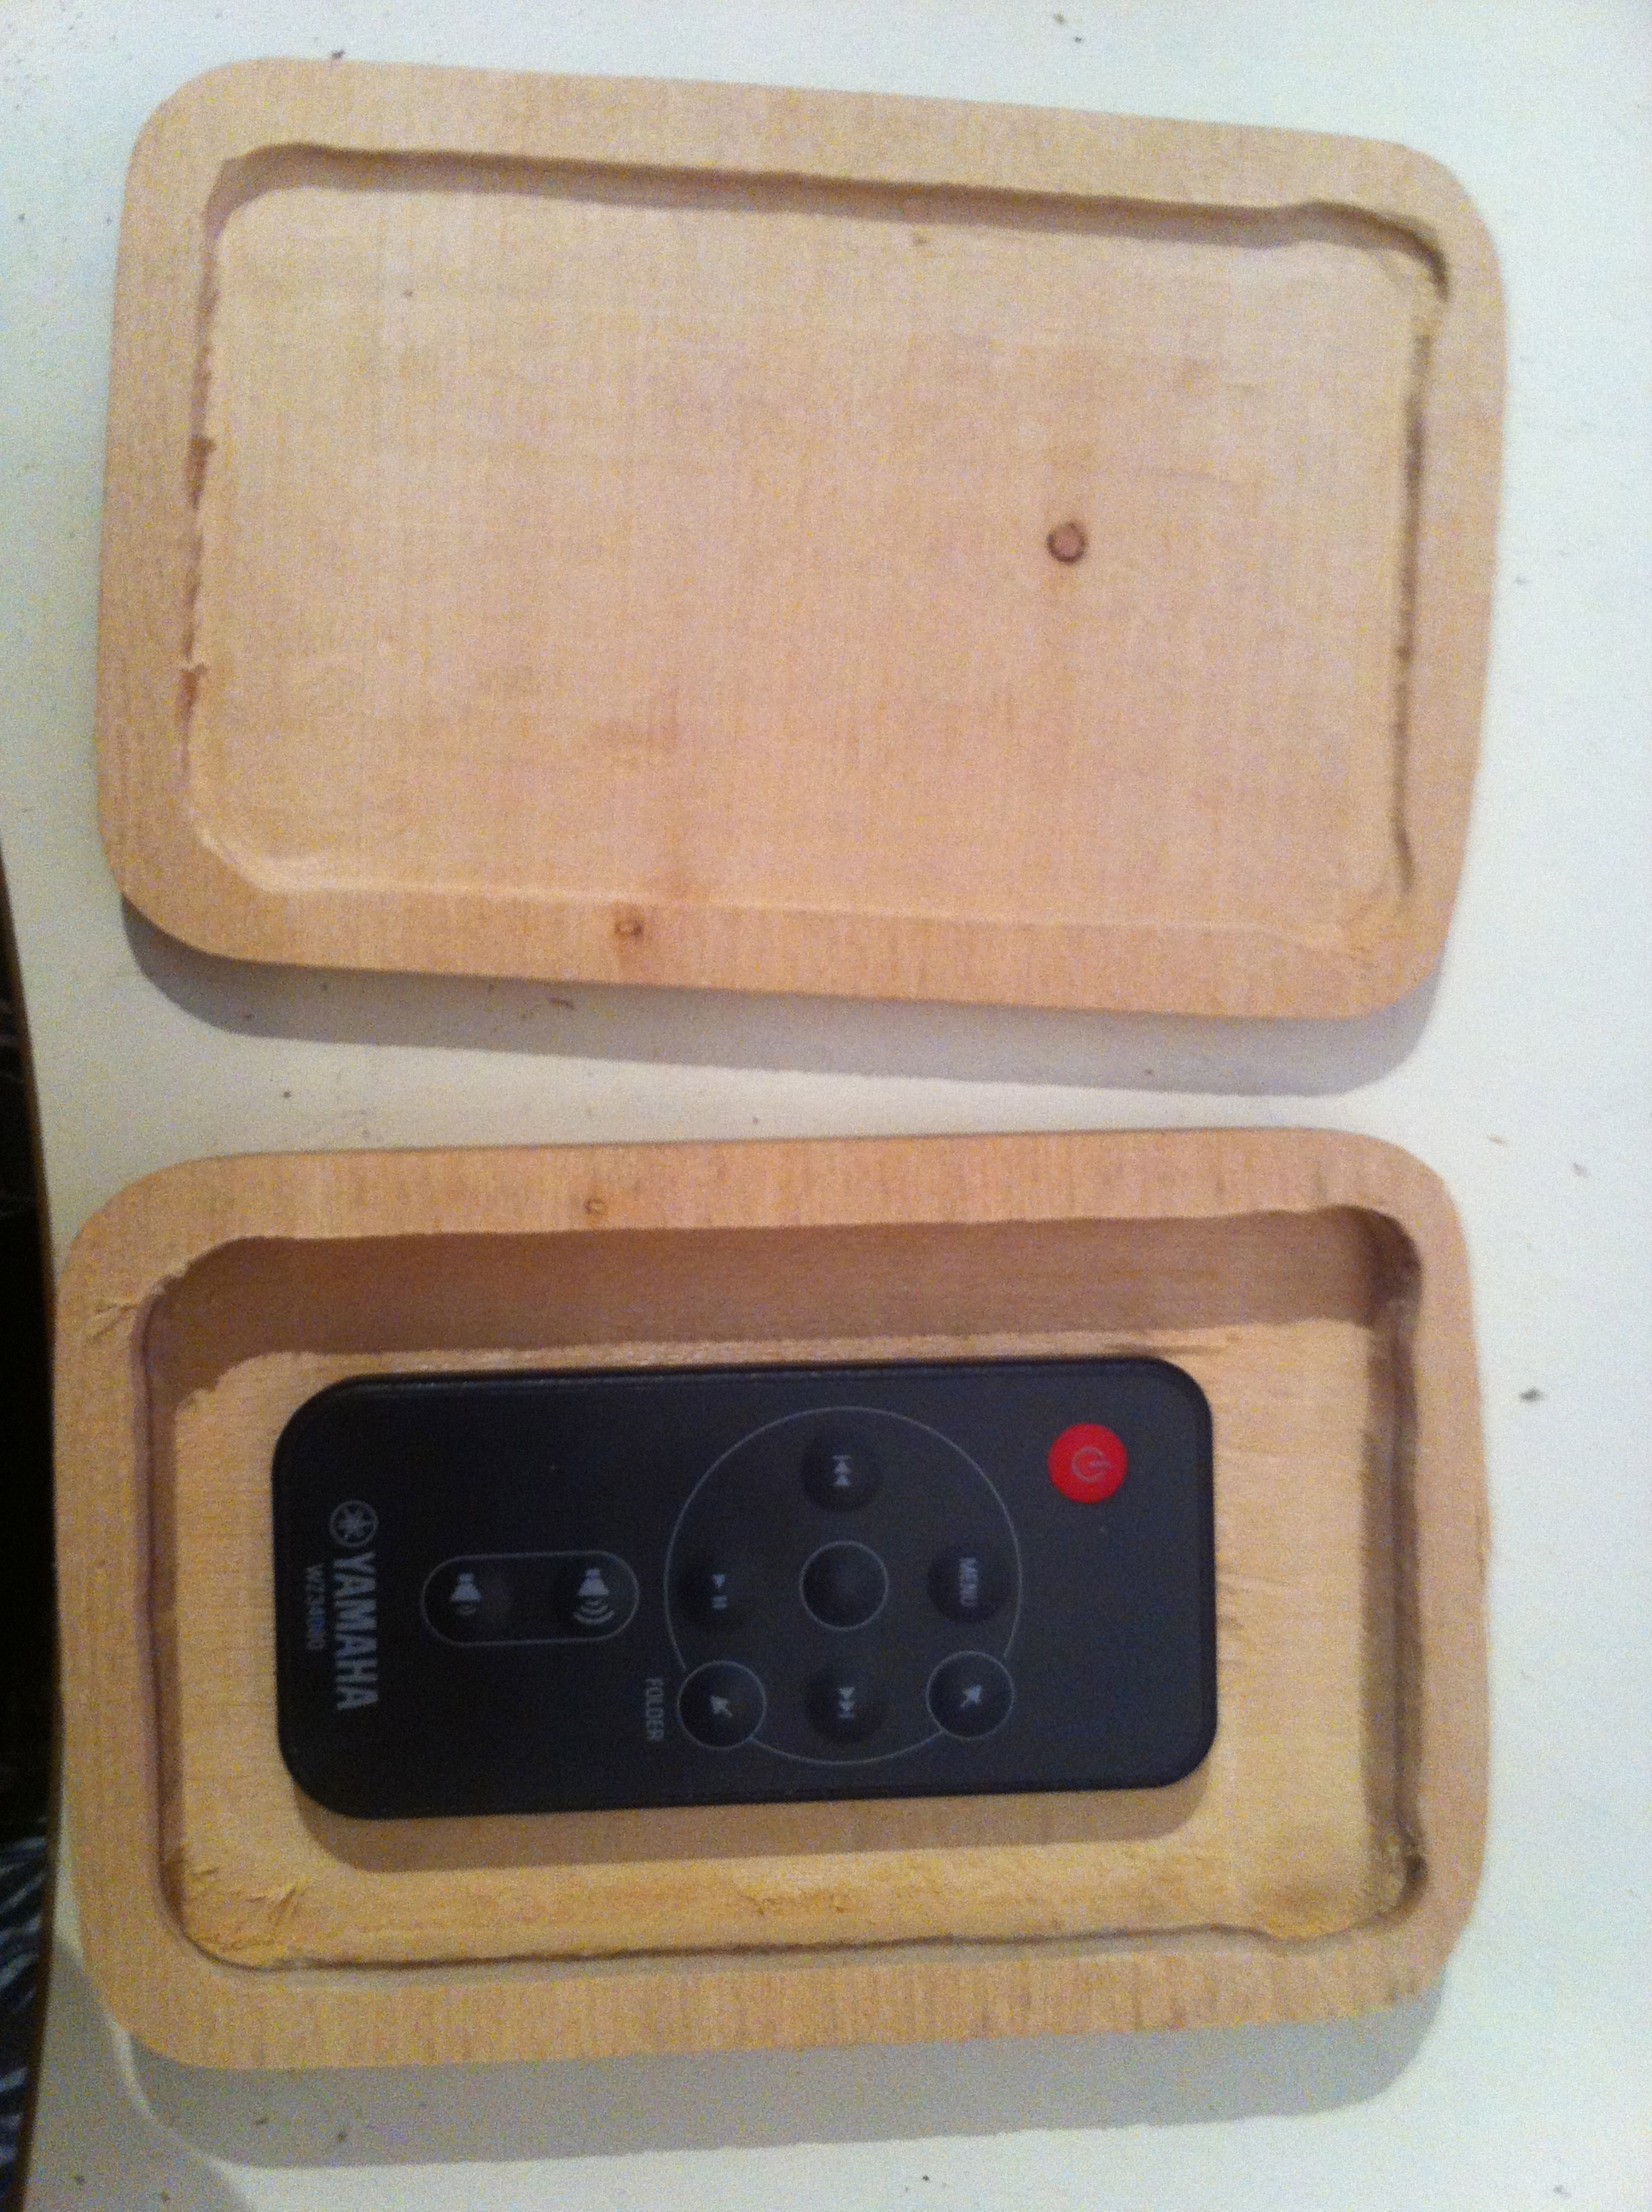 Picture of Remote Fits Comfortably Inside Box